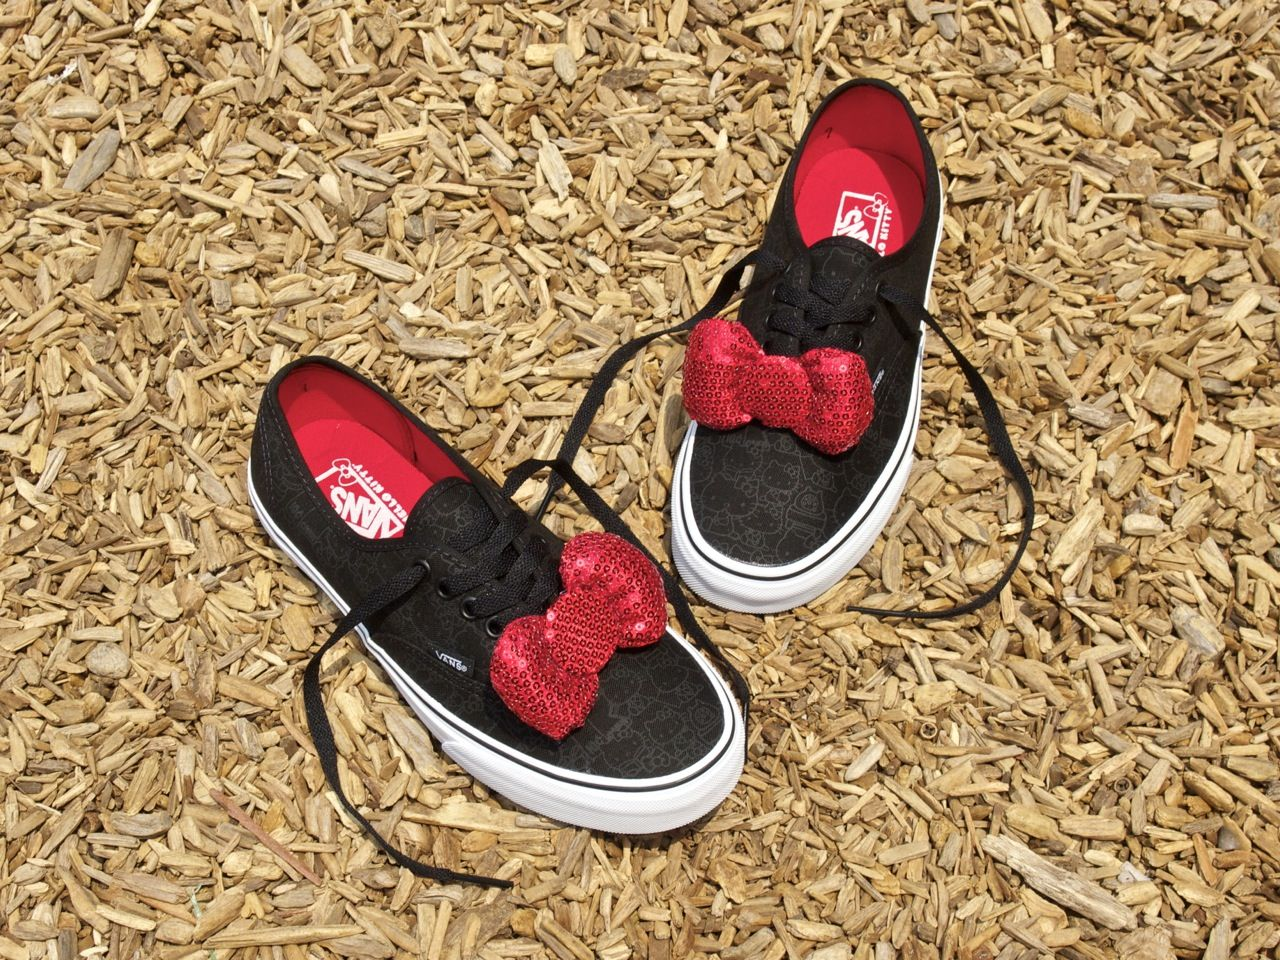 33565d15a3b For the kids or the kid at heart! New  Vans X  HelloKitty styles are in  stores and on shoepalace.com now.